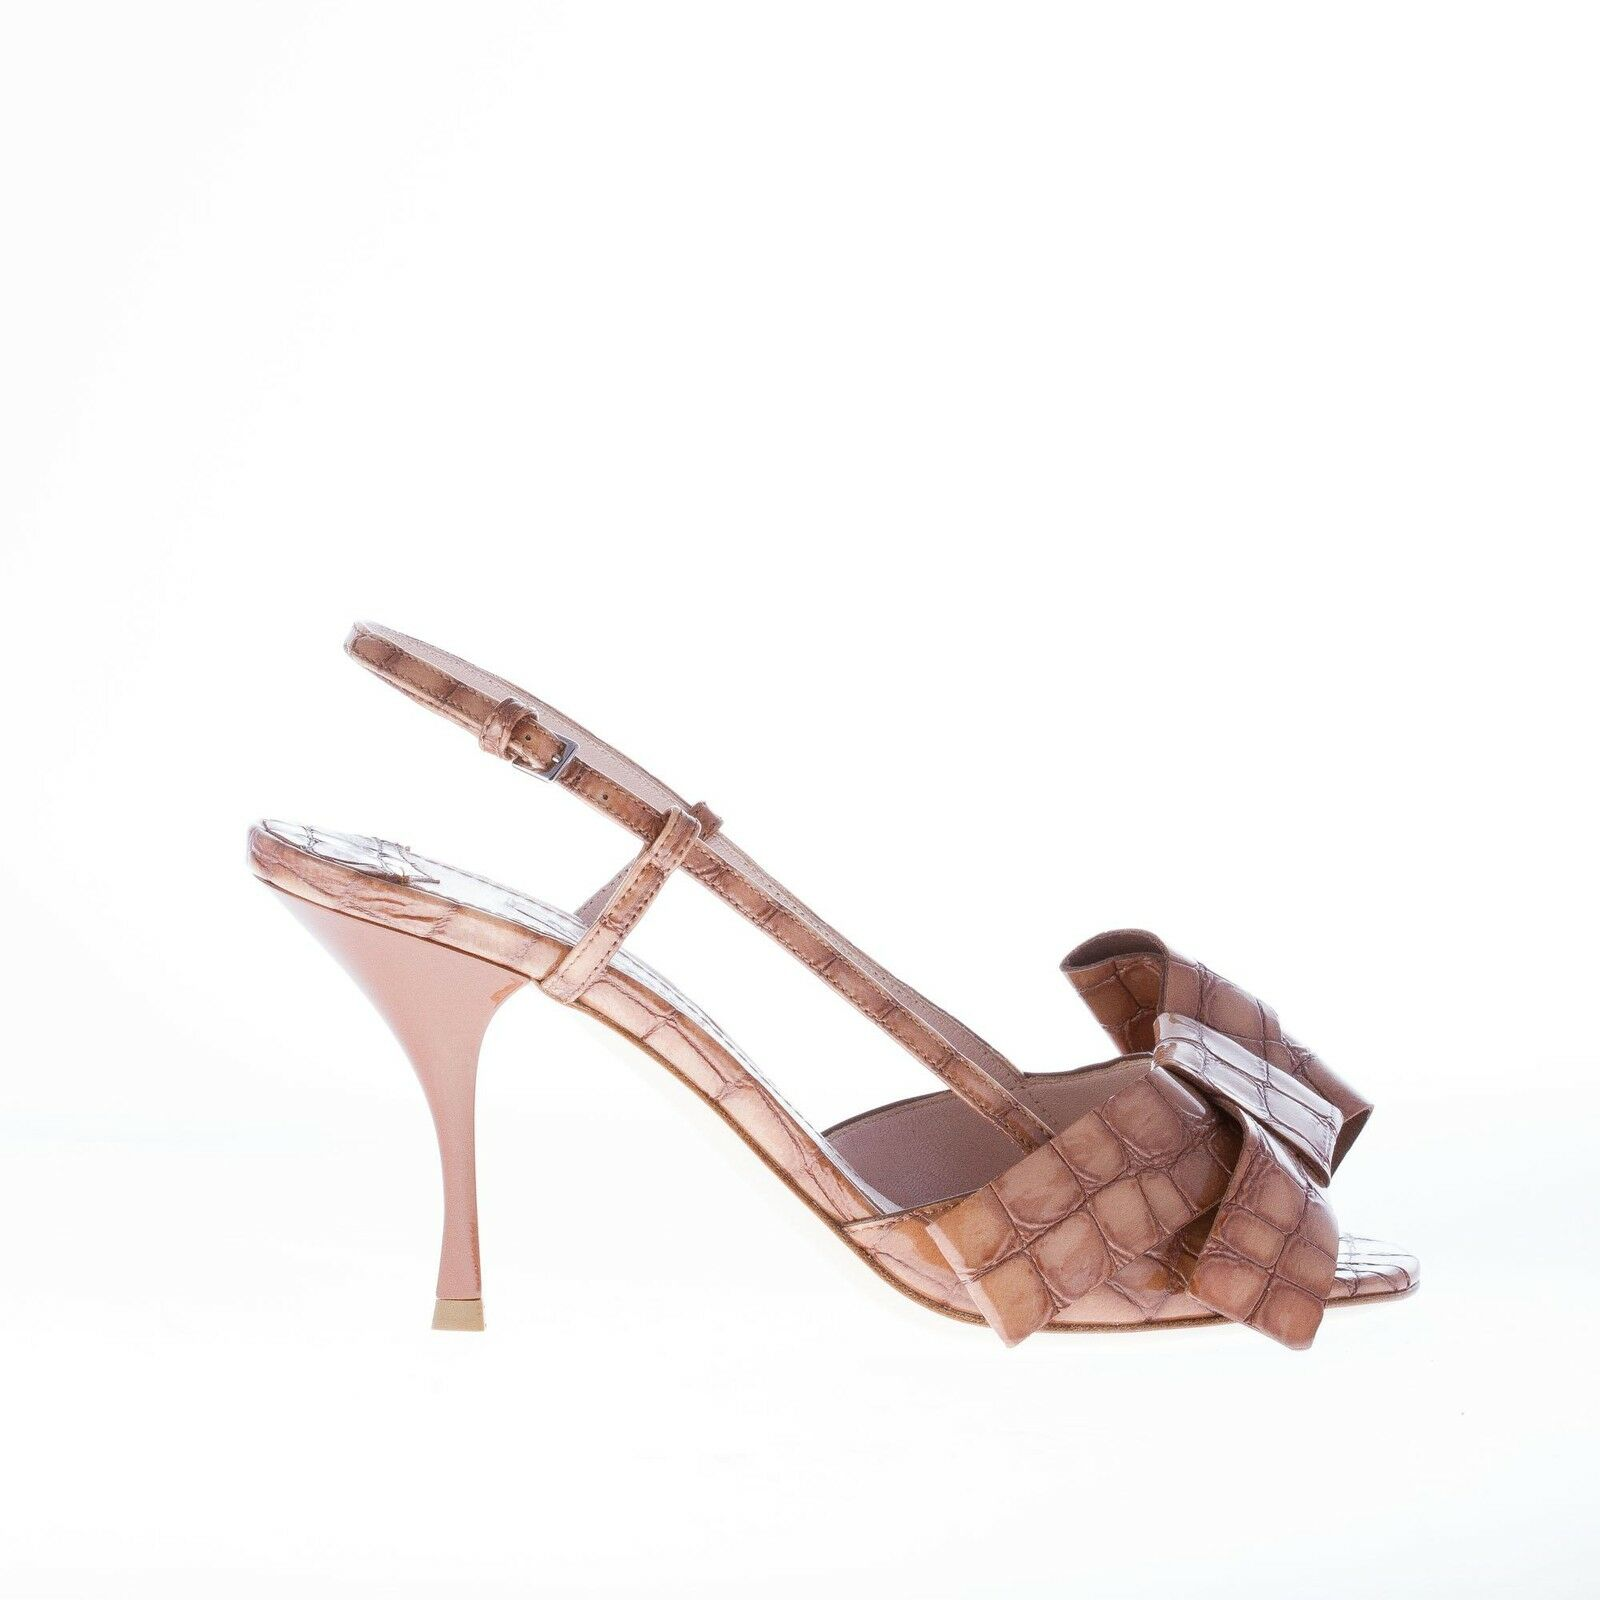 MIU MIU zapatos femme zapatos marrón croco embossed leather sandal with bow